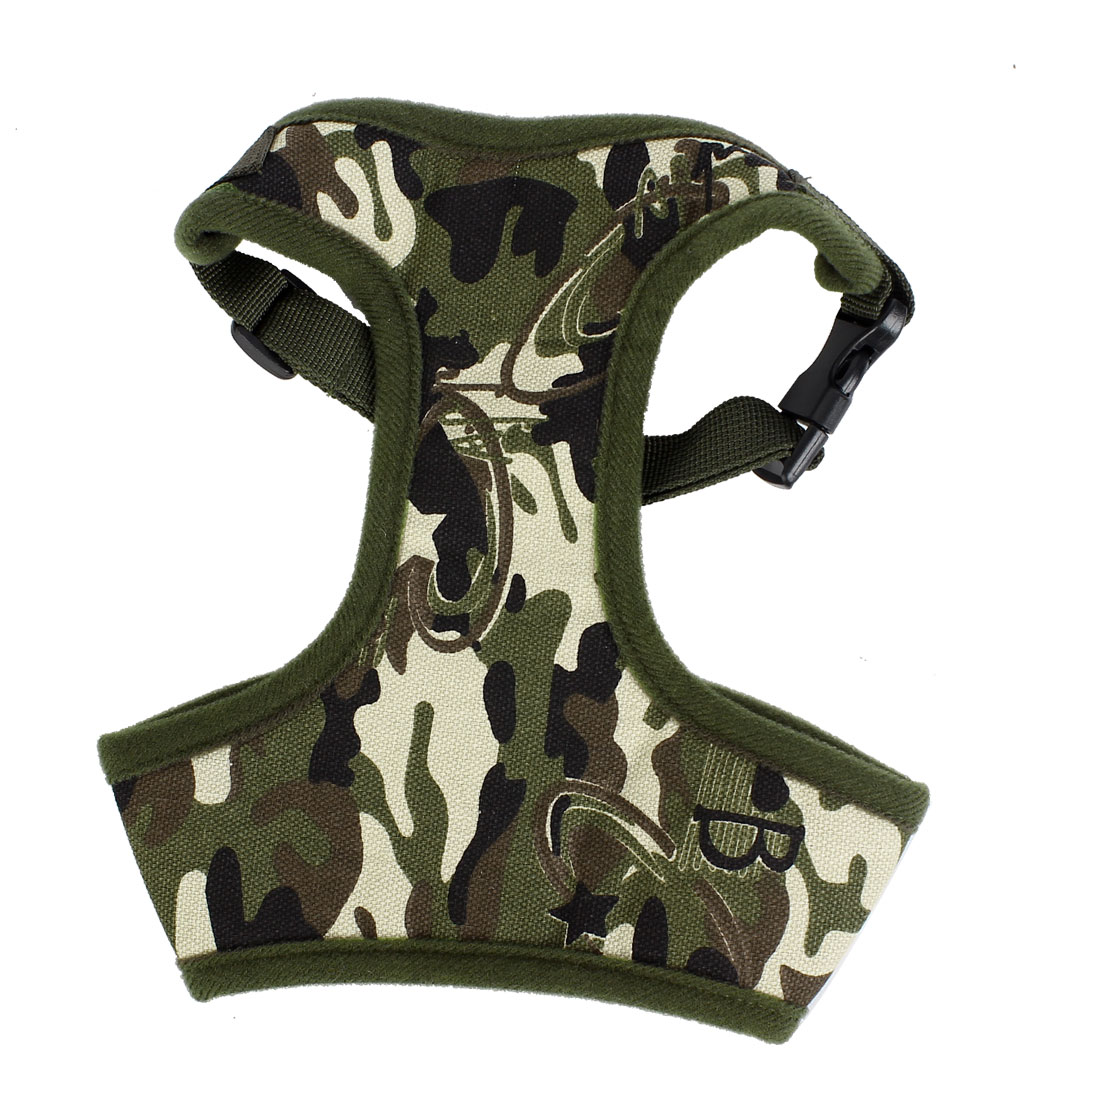 Pet Dog Puppy Walking Camouflage Printed Harness Vest Army Green M